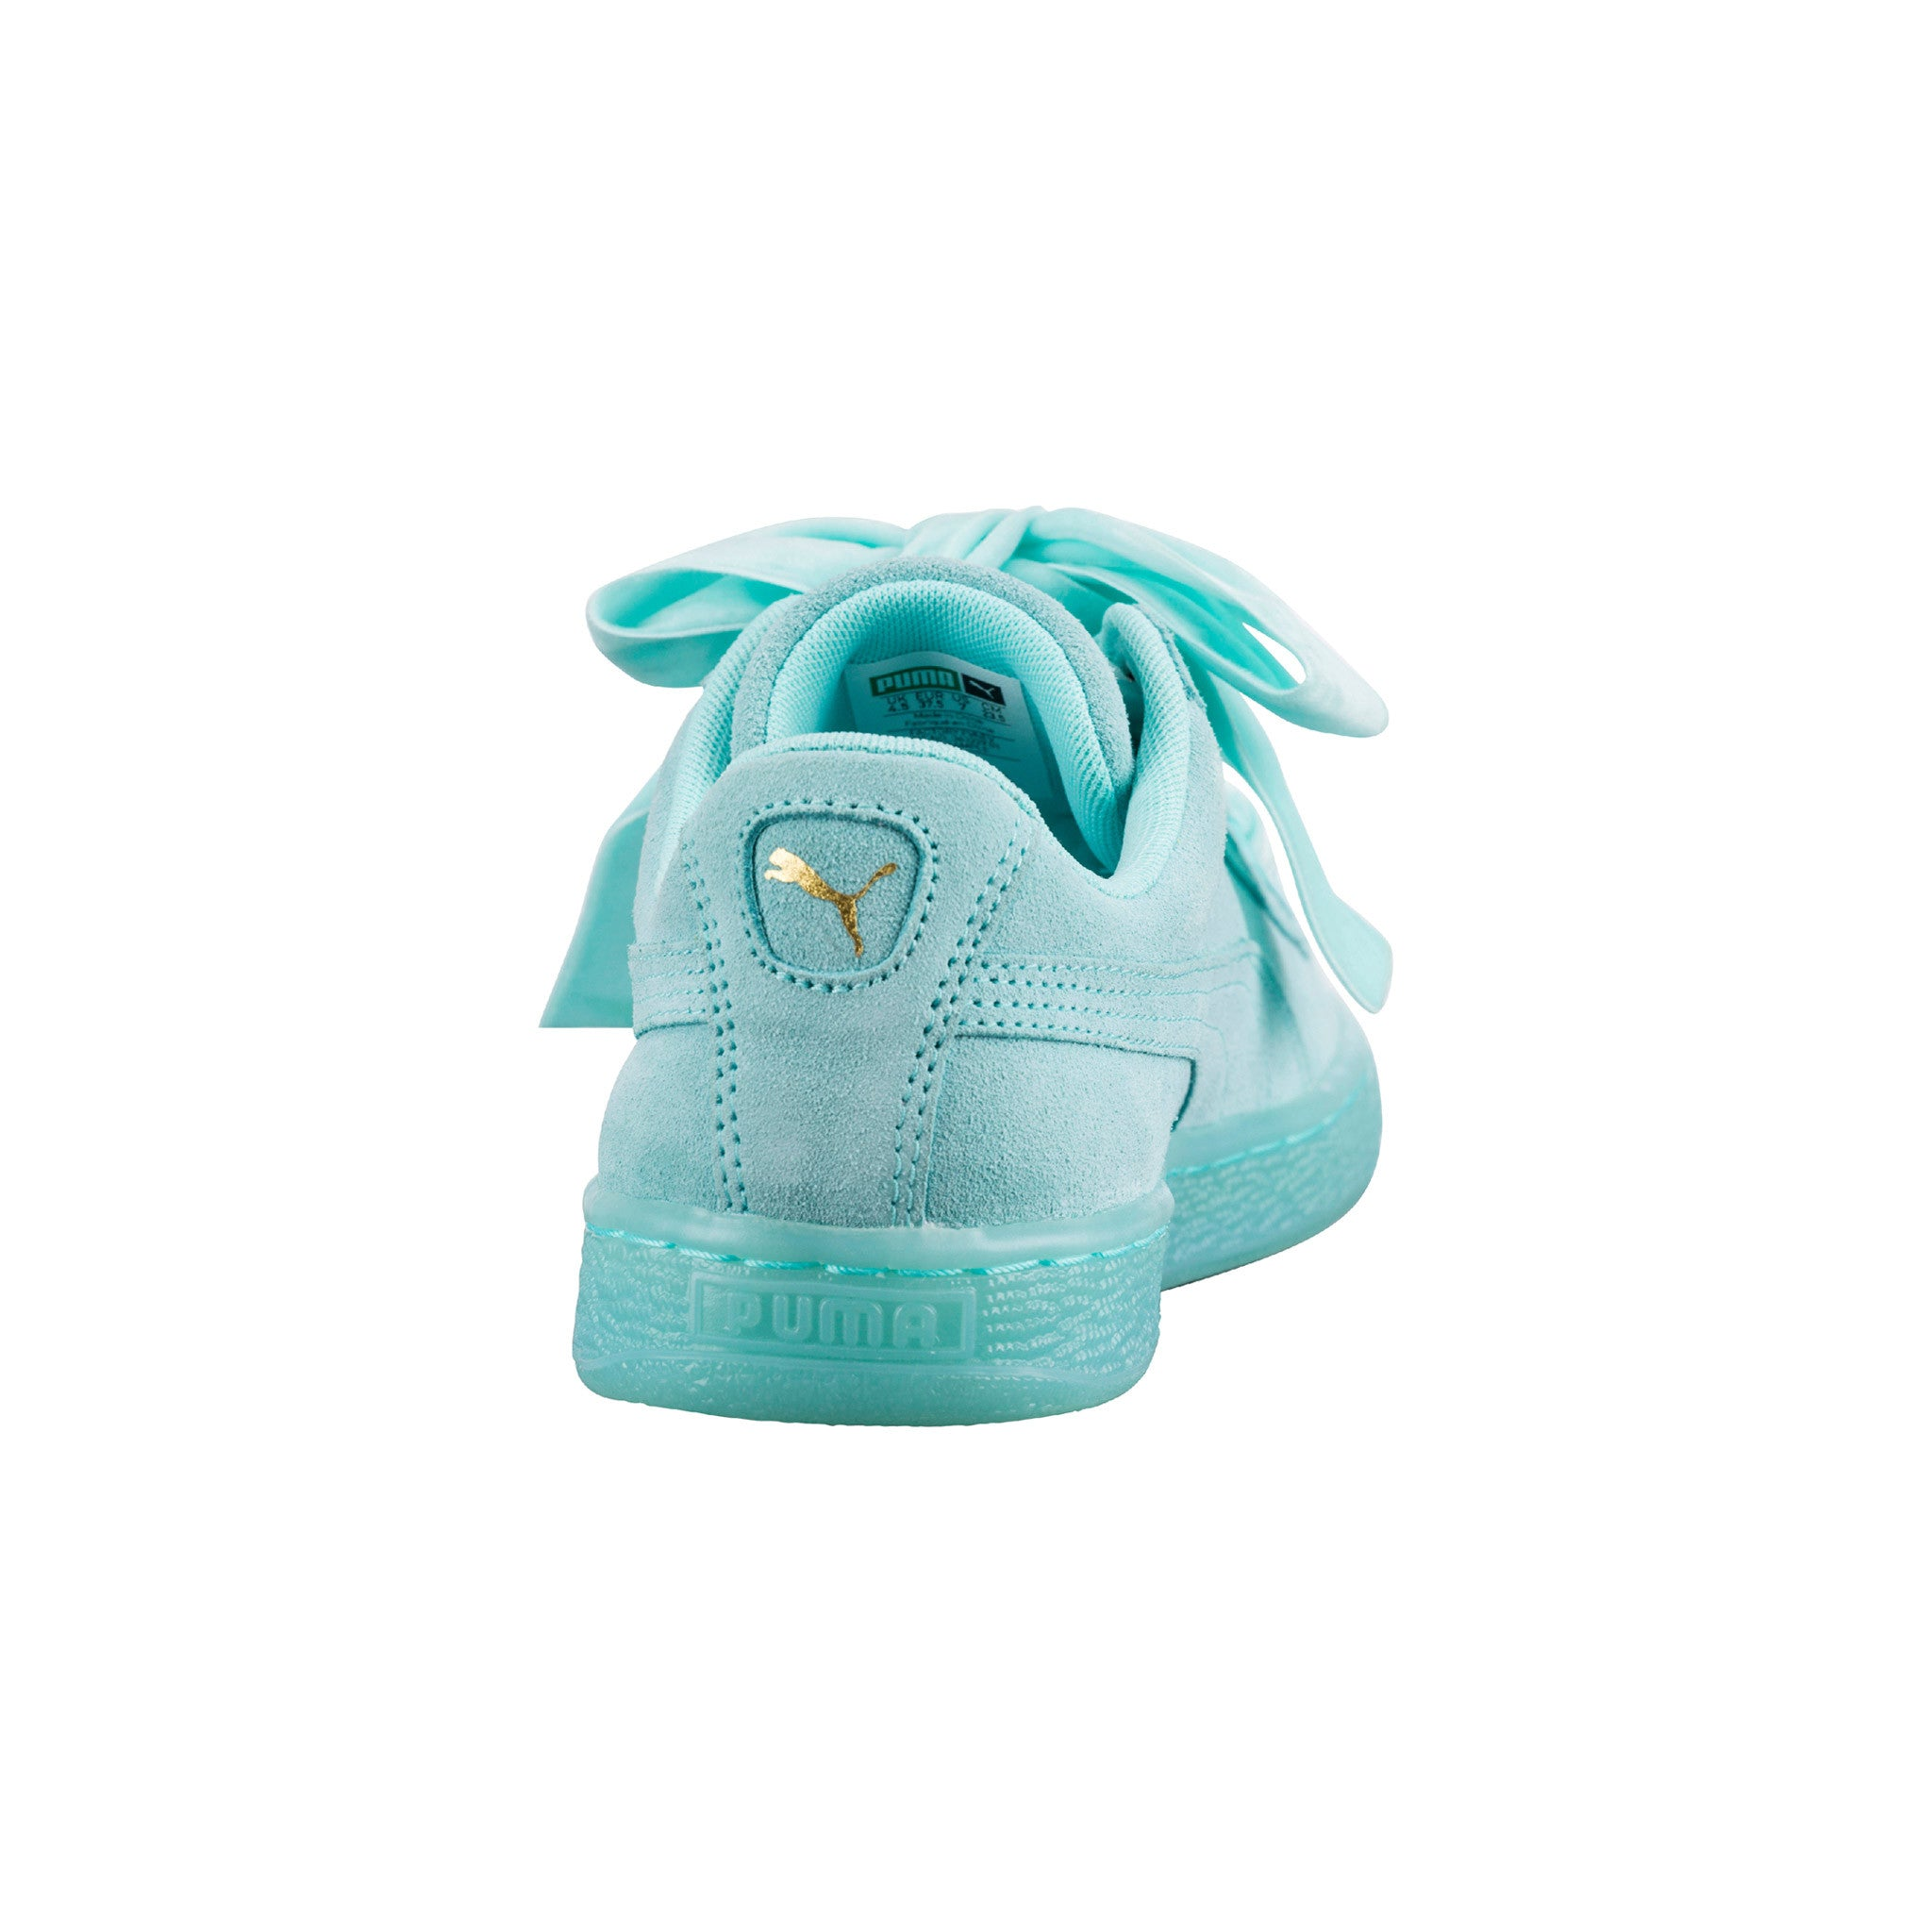 Suede Heart Reset Aruba Puma Sneakers Blue Back View